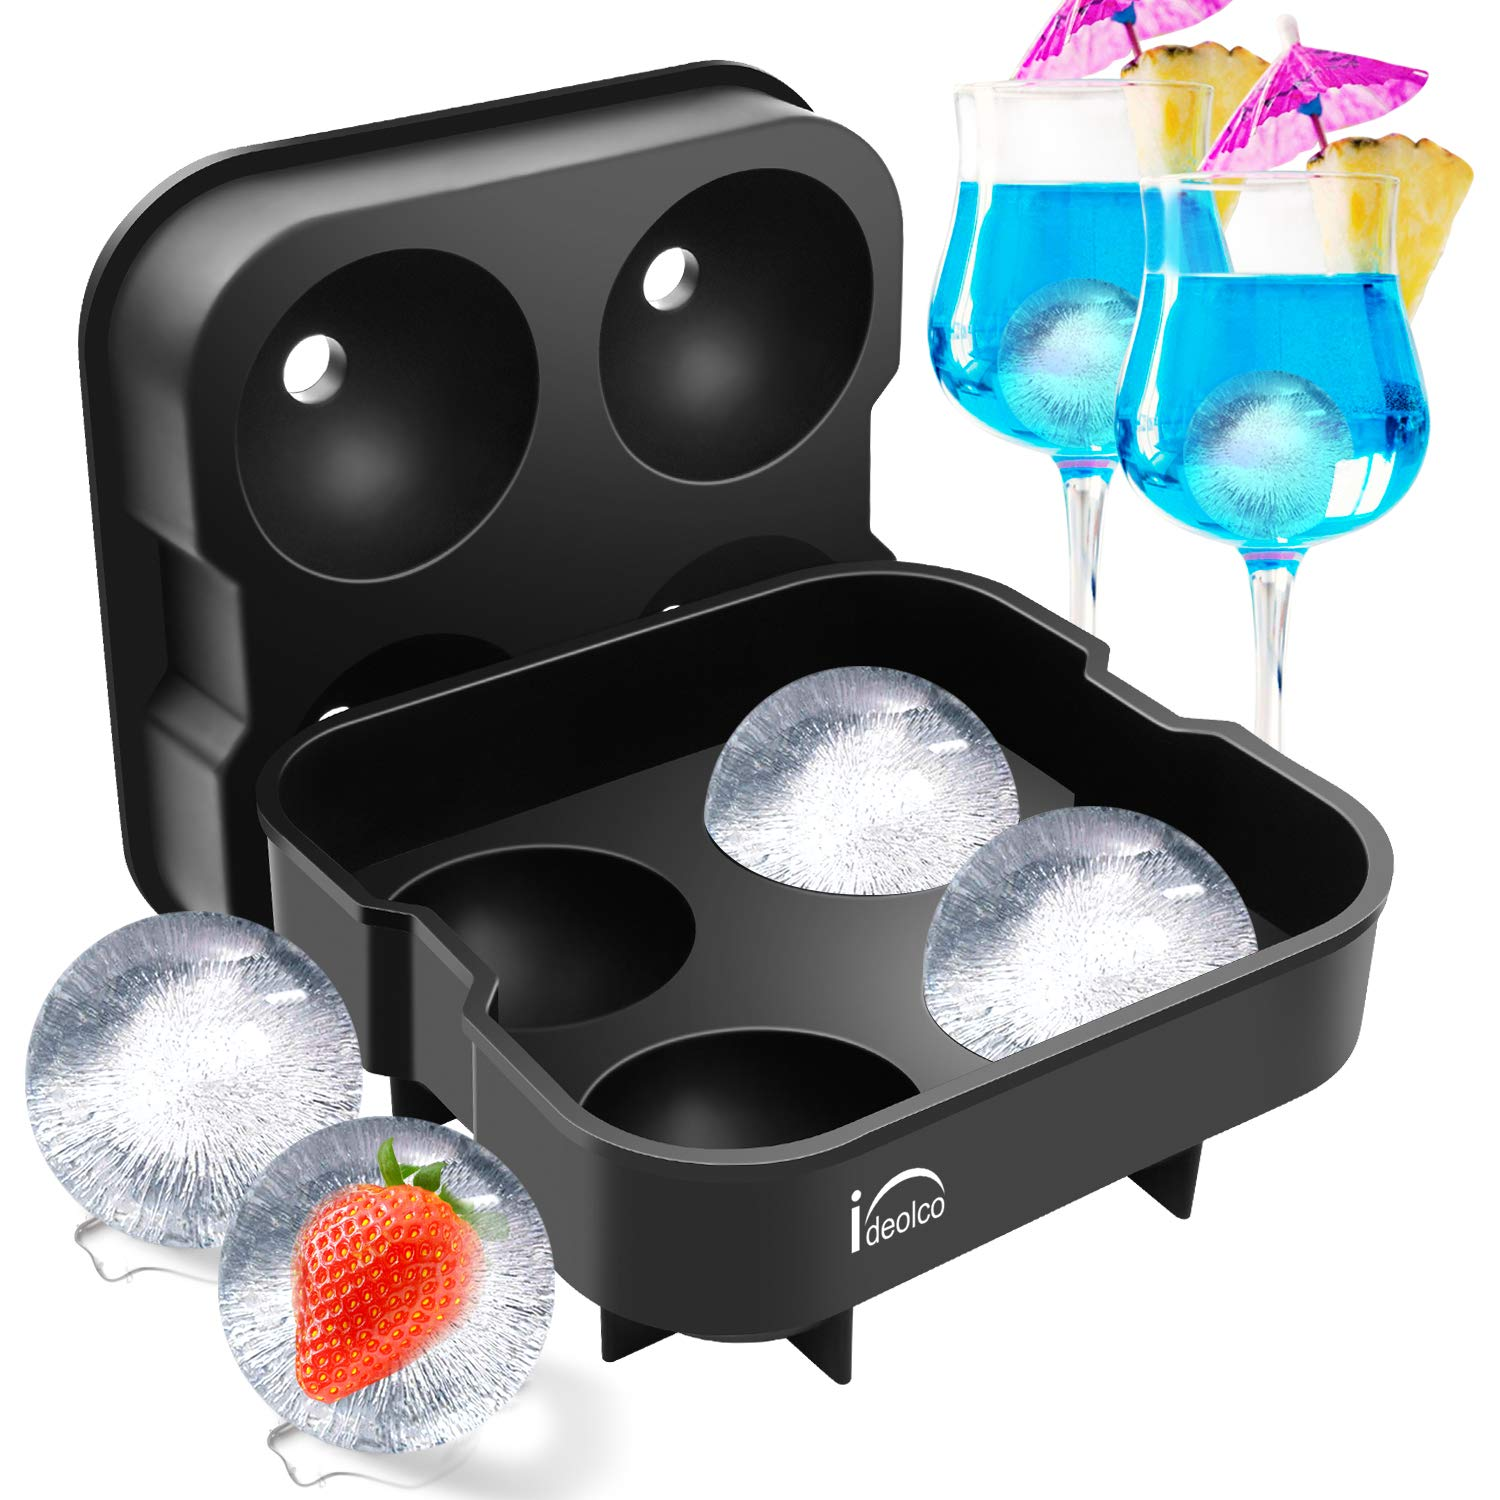 Ideolco Ball-Shaped Ice Cube Trays,Reusable Silicone Sphere Round Ice Cube Molds,Food-Grade BPA Free Flexible Durable Ice Tray with Spill-Resistant Removable Lid and Funnel,Makes 2 Inch Ice Balls